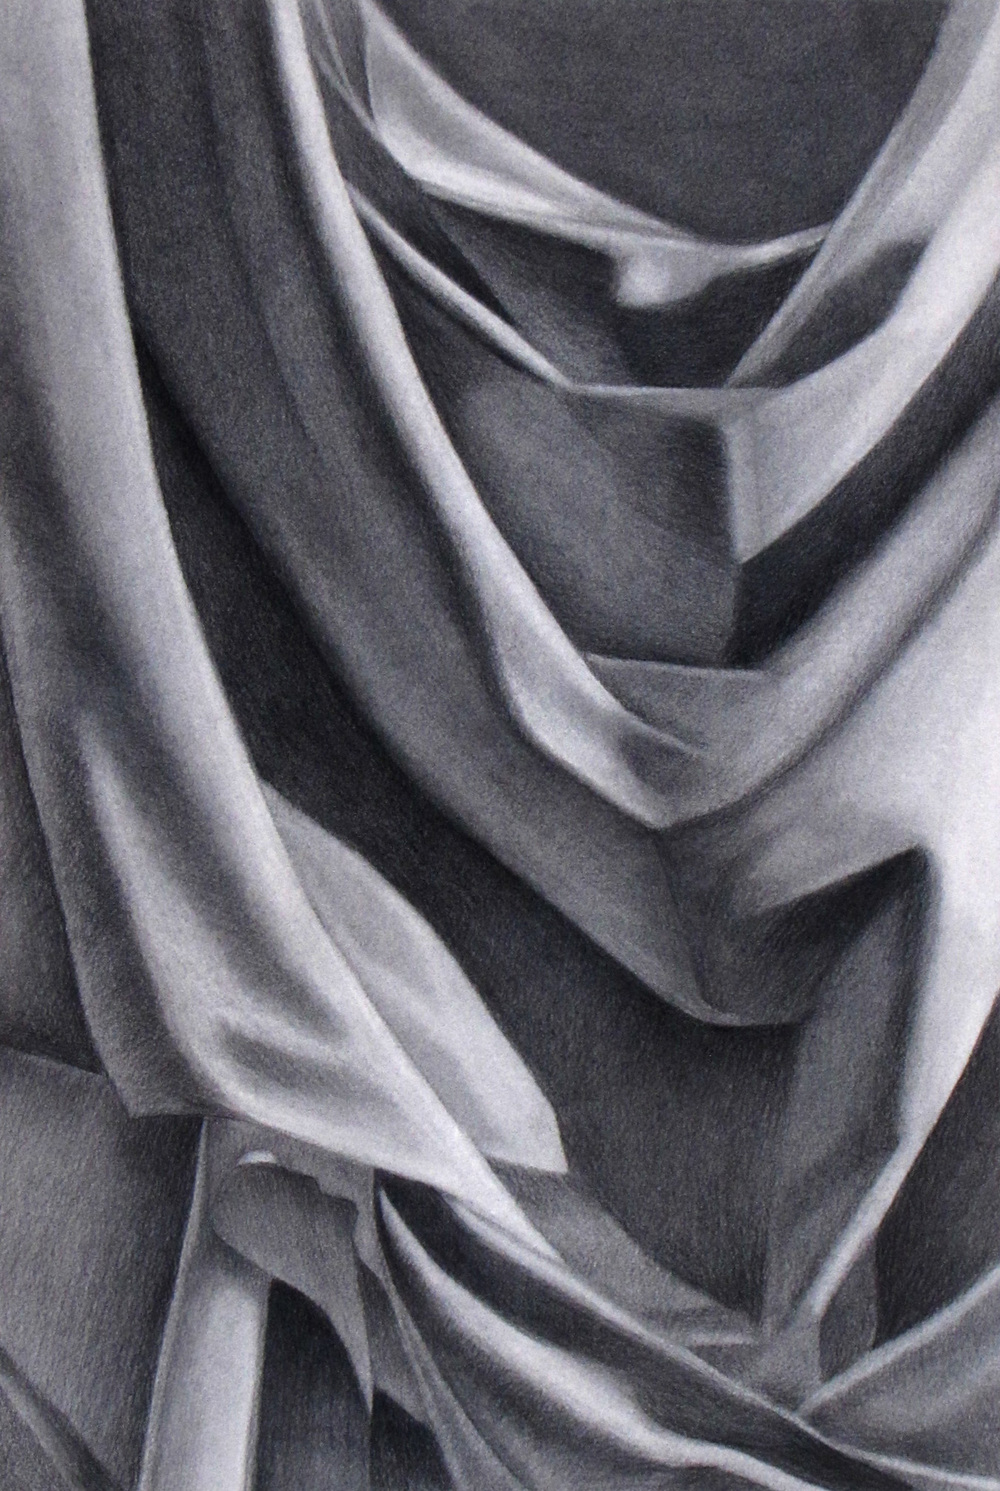 Draped Cloth Study